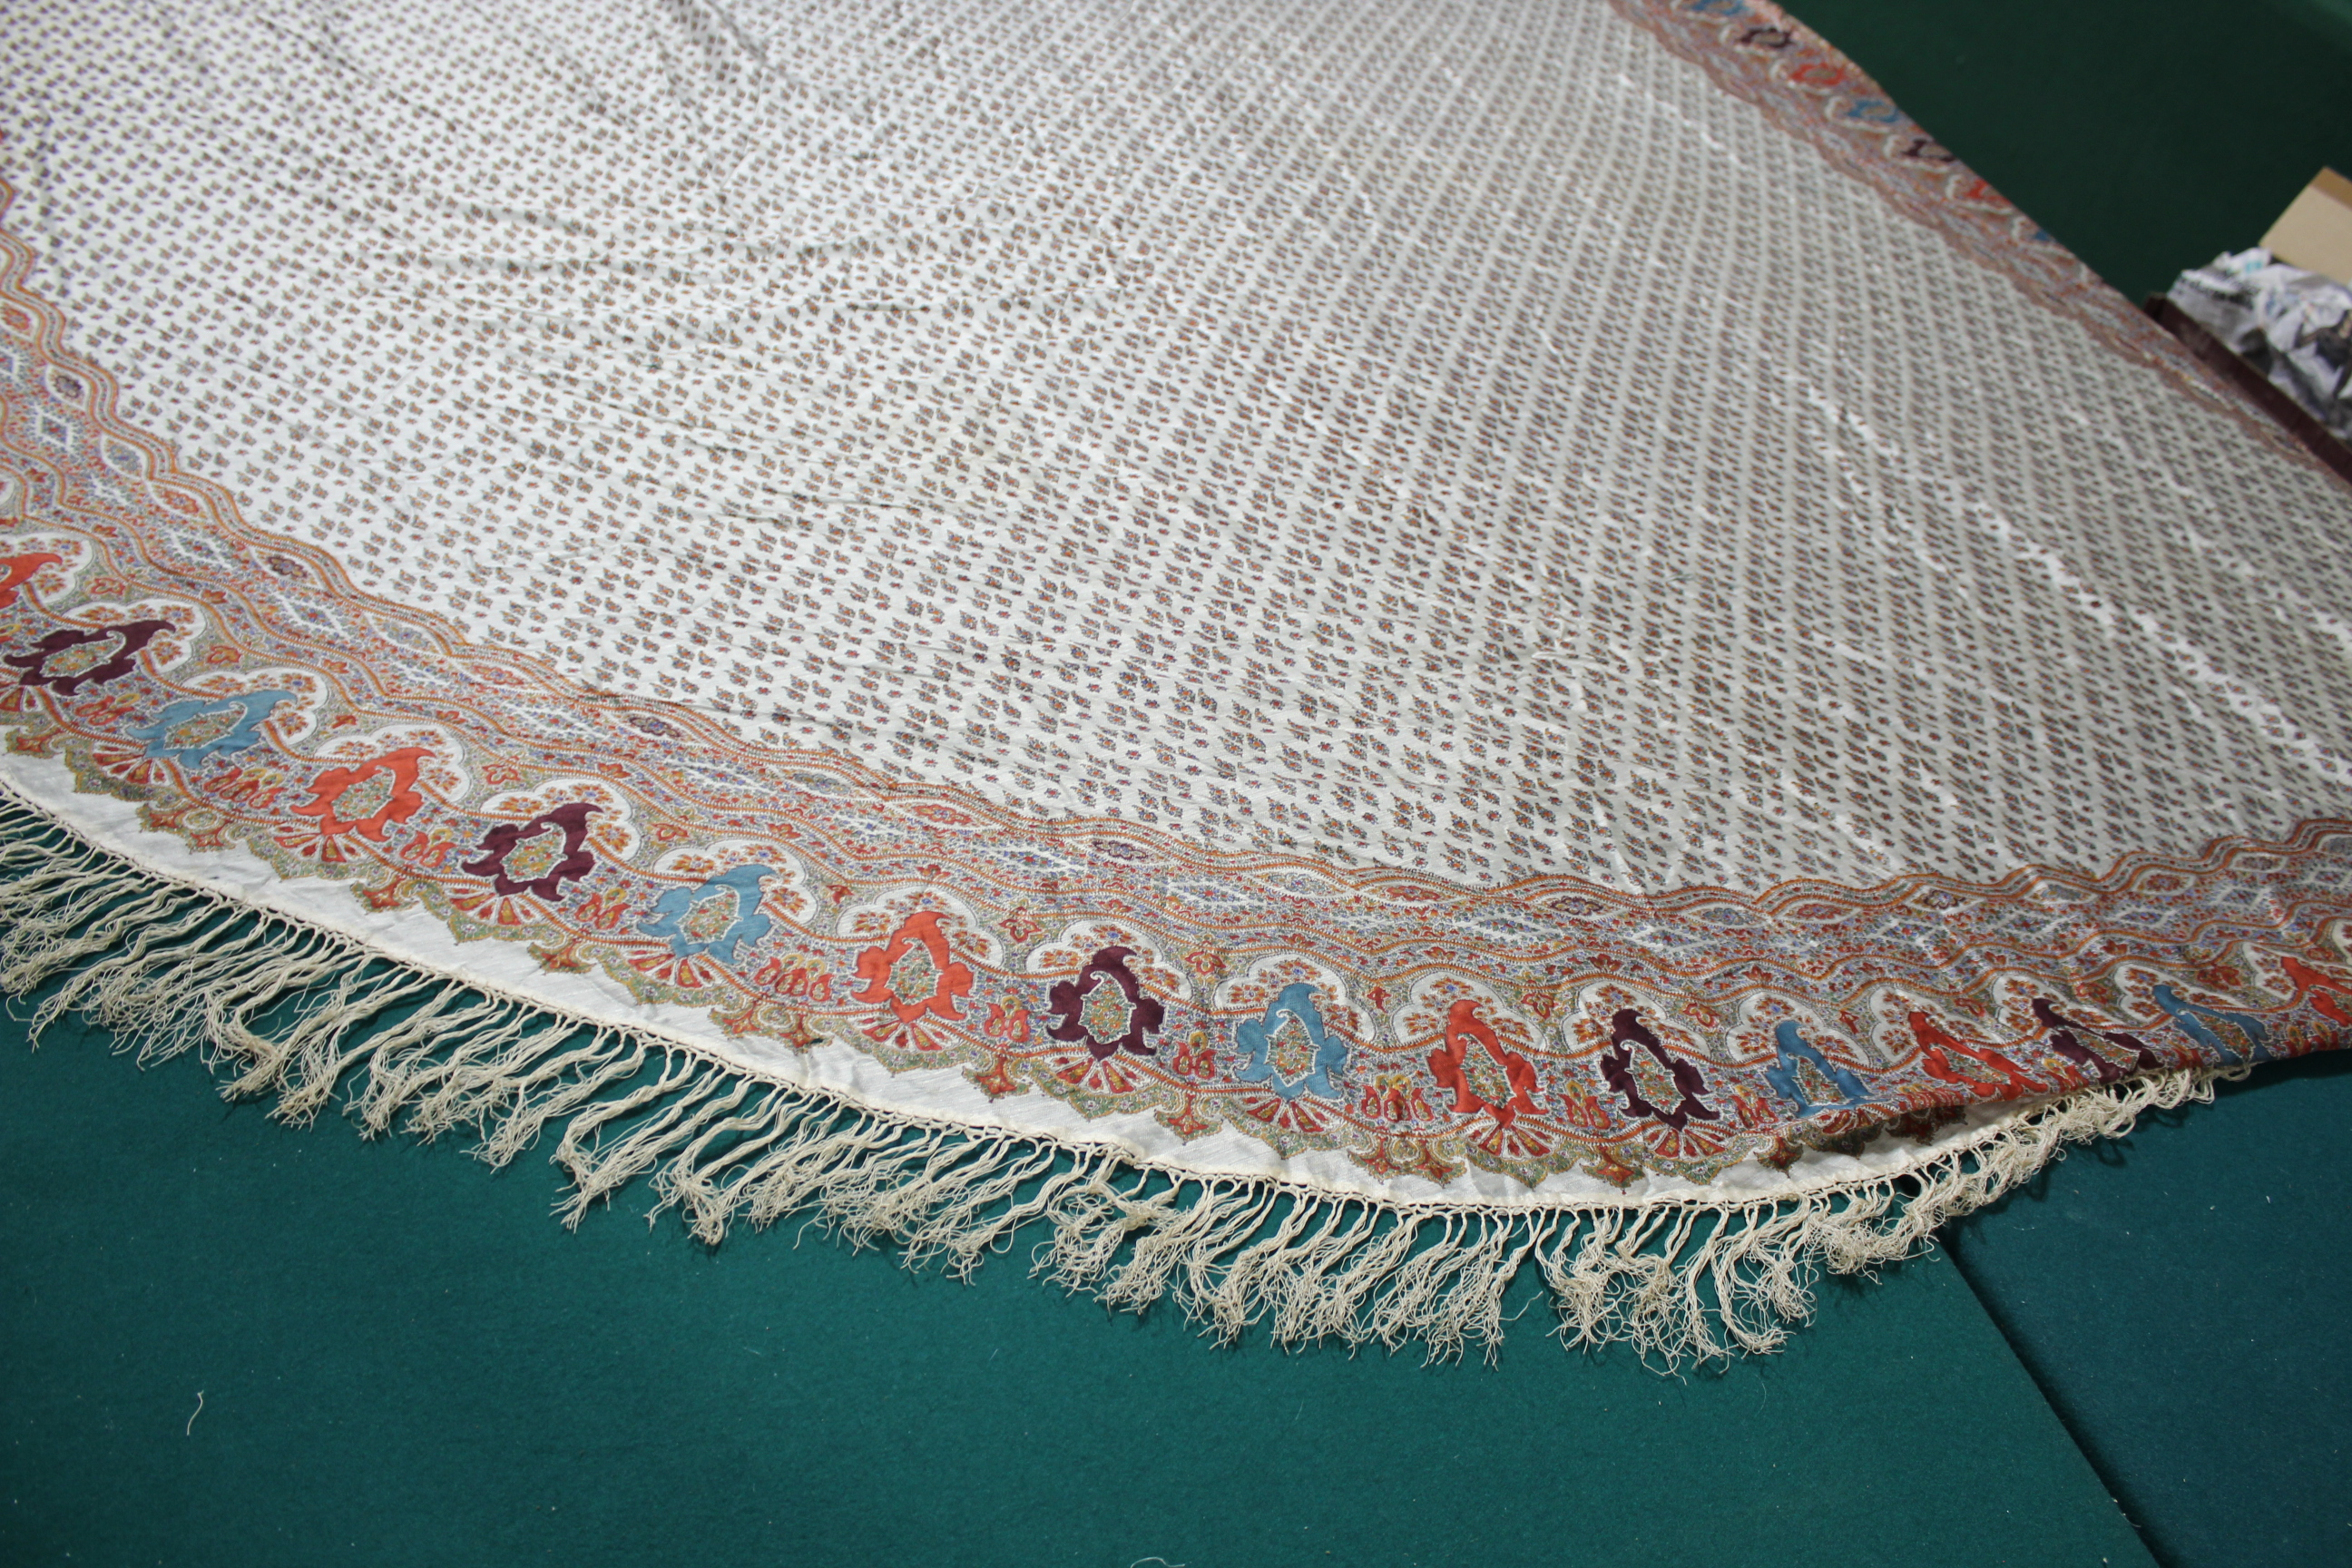 19THC PAISLEY SHAWL a mid 19thc paisley wool cashmere shawl (264cms by 126cms), and also with a fine - Image 6 of 9